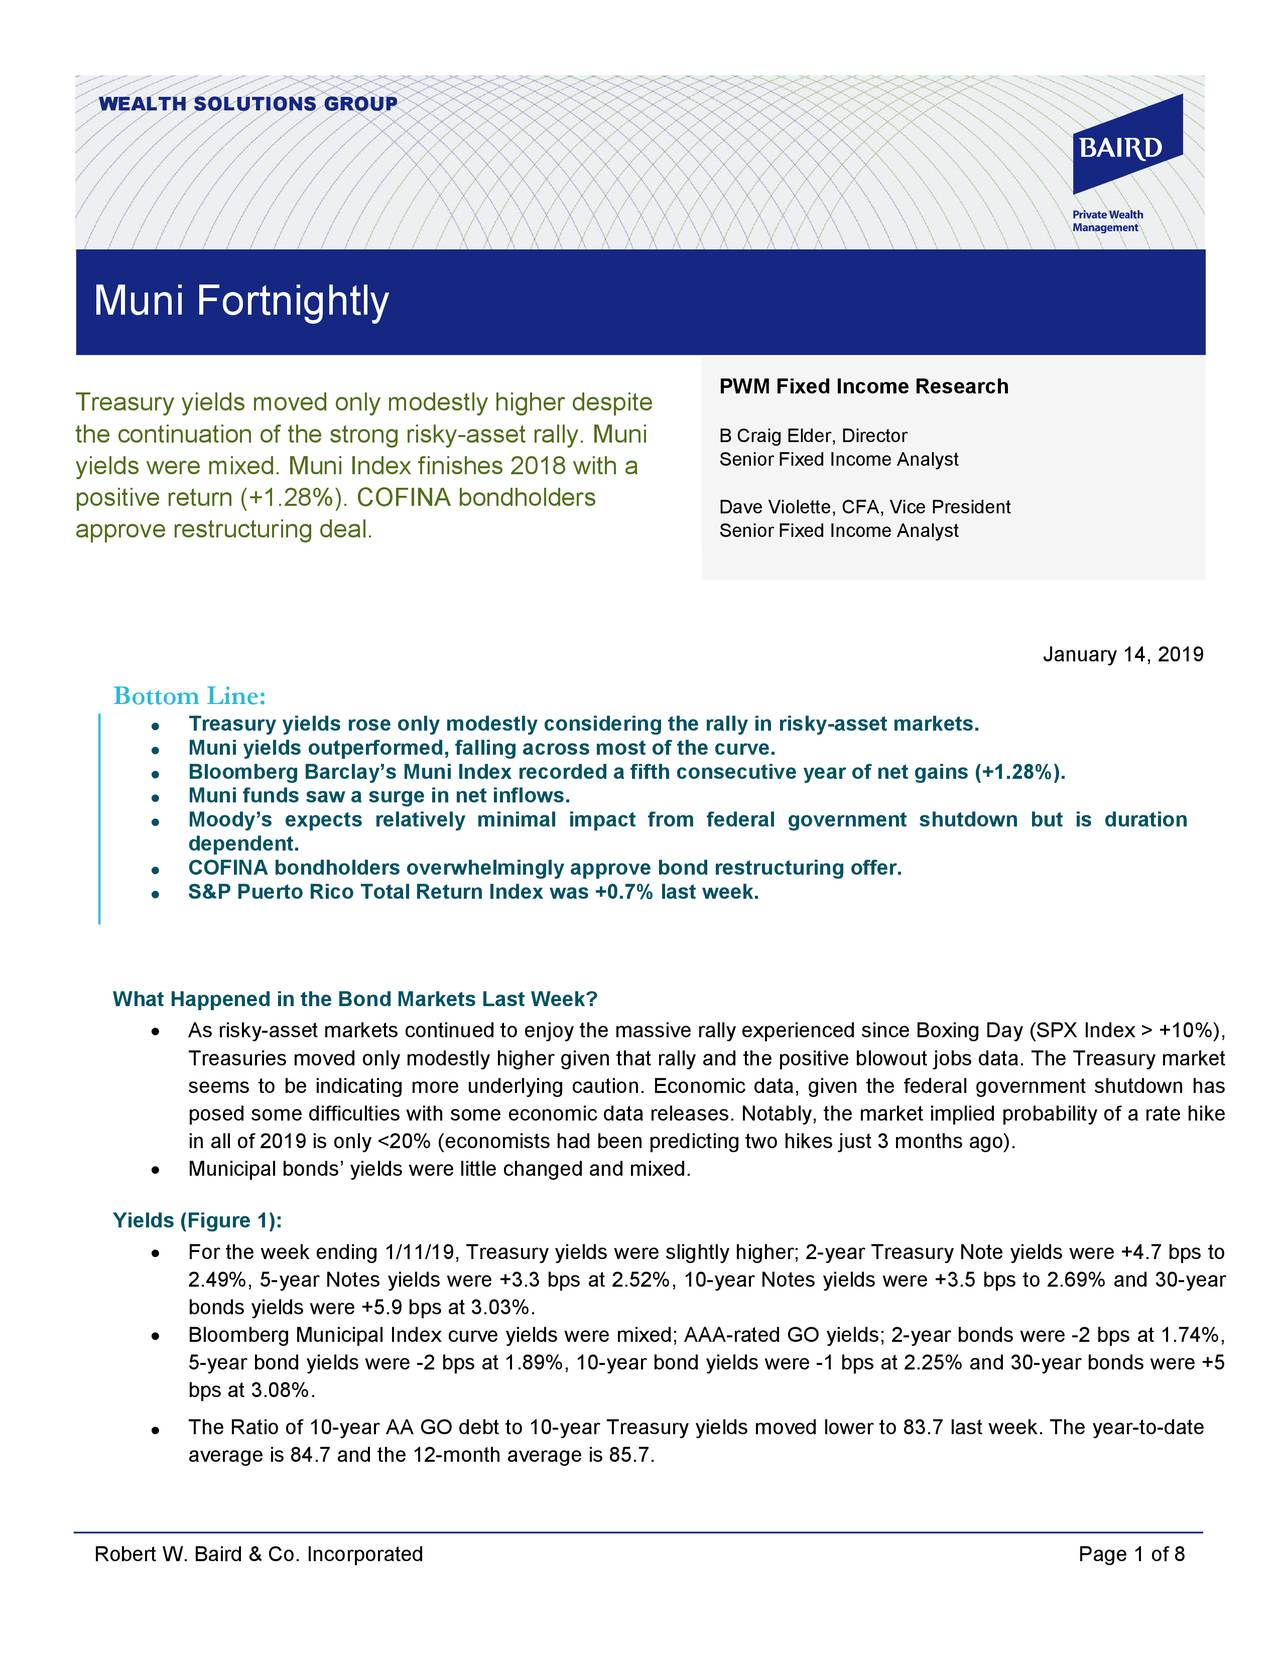 Muni Fortnightly PWM Fixed Income Research Treasury yields moved only modestly higher despite the continuation of the strong risky-asset rally. Muni David N. Violette, CFA, Vice President Senior Fixed Income Analyst yields were mixed. Muni Index finishes 2018 with a Senior Fixed Income Analyst positive return (+1.28%). COFINA bondholders Dave Violette, CFA, Vice President approve restructuring deal. Senior Fixed Income Analyst January 14, 2019 Bottom Line: • Treasury yields rose only modestly considering the rally in risky-asset markets. • Muni yields outperformed, falling across most of the curve. • Bloomberg Barclay's Muni Index recorded a fifth consecutive year of net gains (+1.28%). • Muni funds saw a surge in net inflows. Moody's expects relatively minimal impact from federal government shutdown but is duration • dependent. • COFINA bondholders overwhelmingly approve bond restructuring offer. • S&P Puerto Rico Total Return Index was +0.7% last week. What Happened in the Bond Markets Last Week? • As risky-asset markets continued to enjoy the massive rally experienced since Boxing Day (SPX Index >+10%), Treasuries moved only modestly higher given that rally and the positive blowout jobs data. The Treasury market seems to be indicating more underlying caution. Economic data, given the federal government shutdown has posed some difficulties with some economic data releases. Notably, the market implied probability of a rate hike in all of 2019 is only <20% (economists had been predicting two hikes just 3 months ago). • Municipal bonds' yields were little changed and mixed. Yields (Figure 1): • For the week ending 1/11/19, Treasury yields were slightly higher; 2-year Treasury Note yields were +4.7 bps to 2.49%, 5-year Notes yields were +3.3 bps at 2.52%, 10- year Notes yields were +3.5 bps to 2.69% and 30- year bonds yields were +5.9 bps at 3.03%. • Bloomberg Municipal Index curve yields were mixed; AAA-rated GO yields; 2-year bonds were -2 bps at 1.74%, 5-year bond yields were -2 bps at 1.89%, 10-year bond yields were -1 bps at 2.25% and 30-year bonds were +5 bps at 3.08%. • The Ratio of 10-year AA GO debt to 10-year Treasury yields moved lower to 83.7 last week. The year-to-date average is 84.7 and the 12-month average is 85.7. Robert W. Baird & Co. Incorporated Page 1 of 8